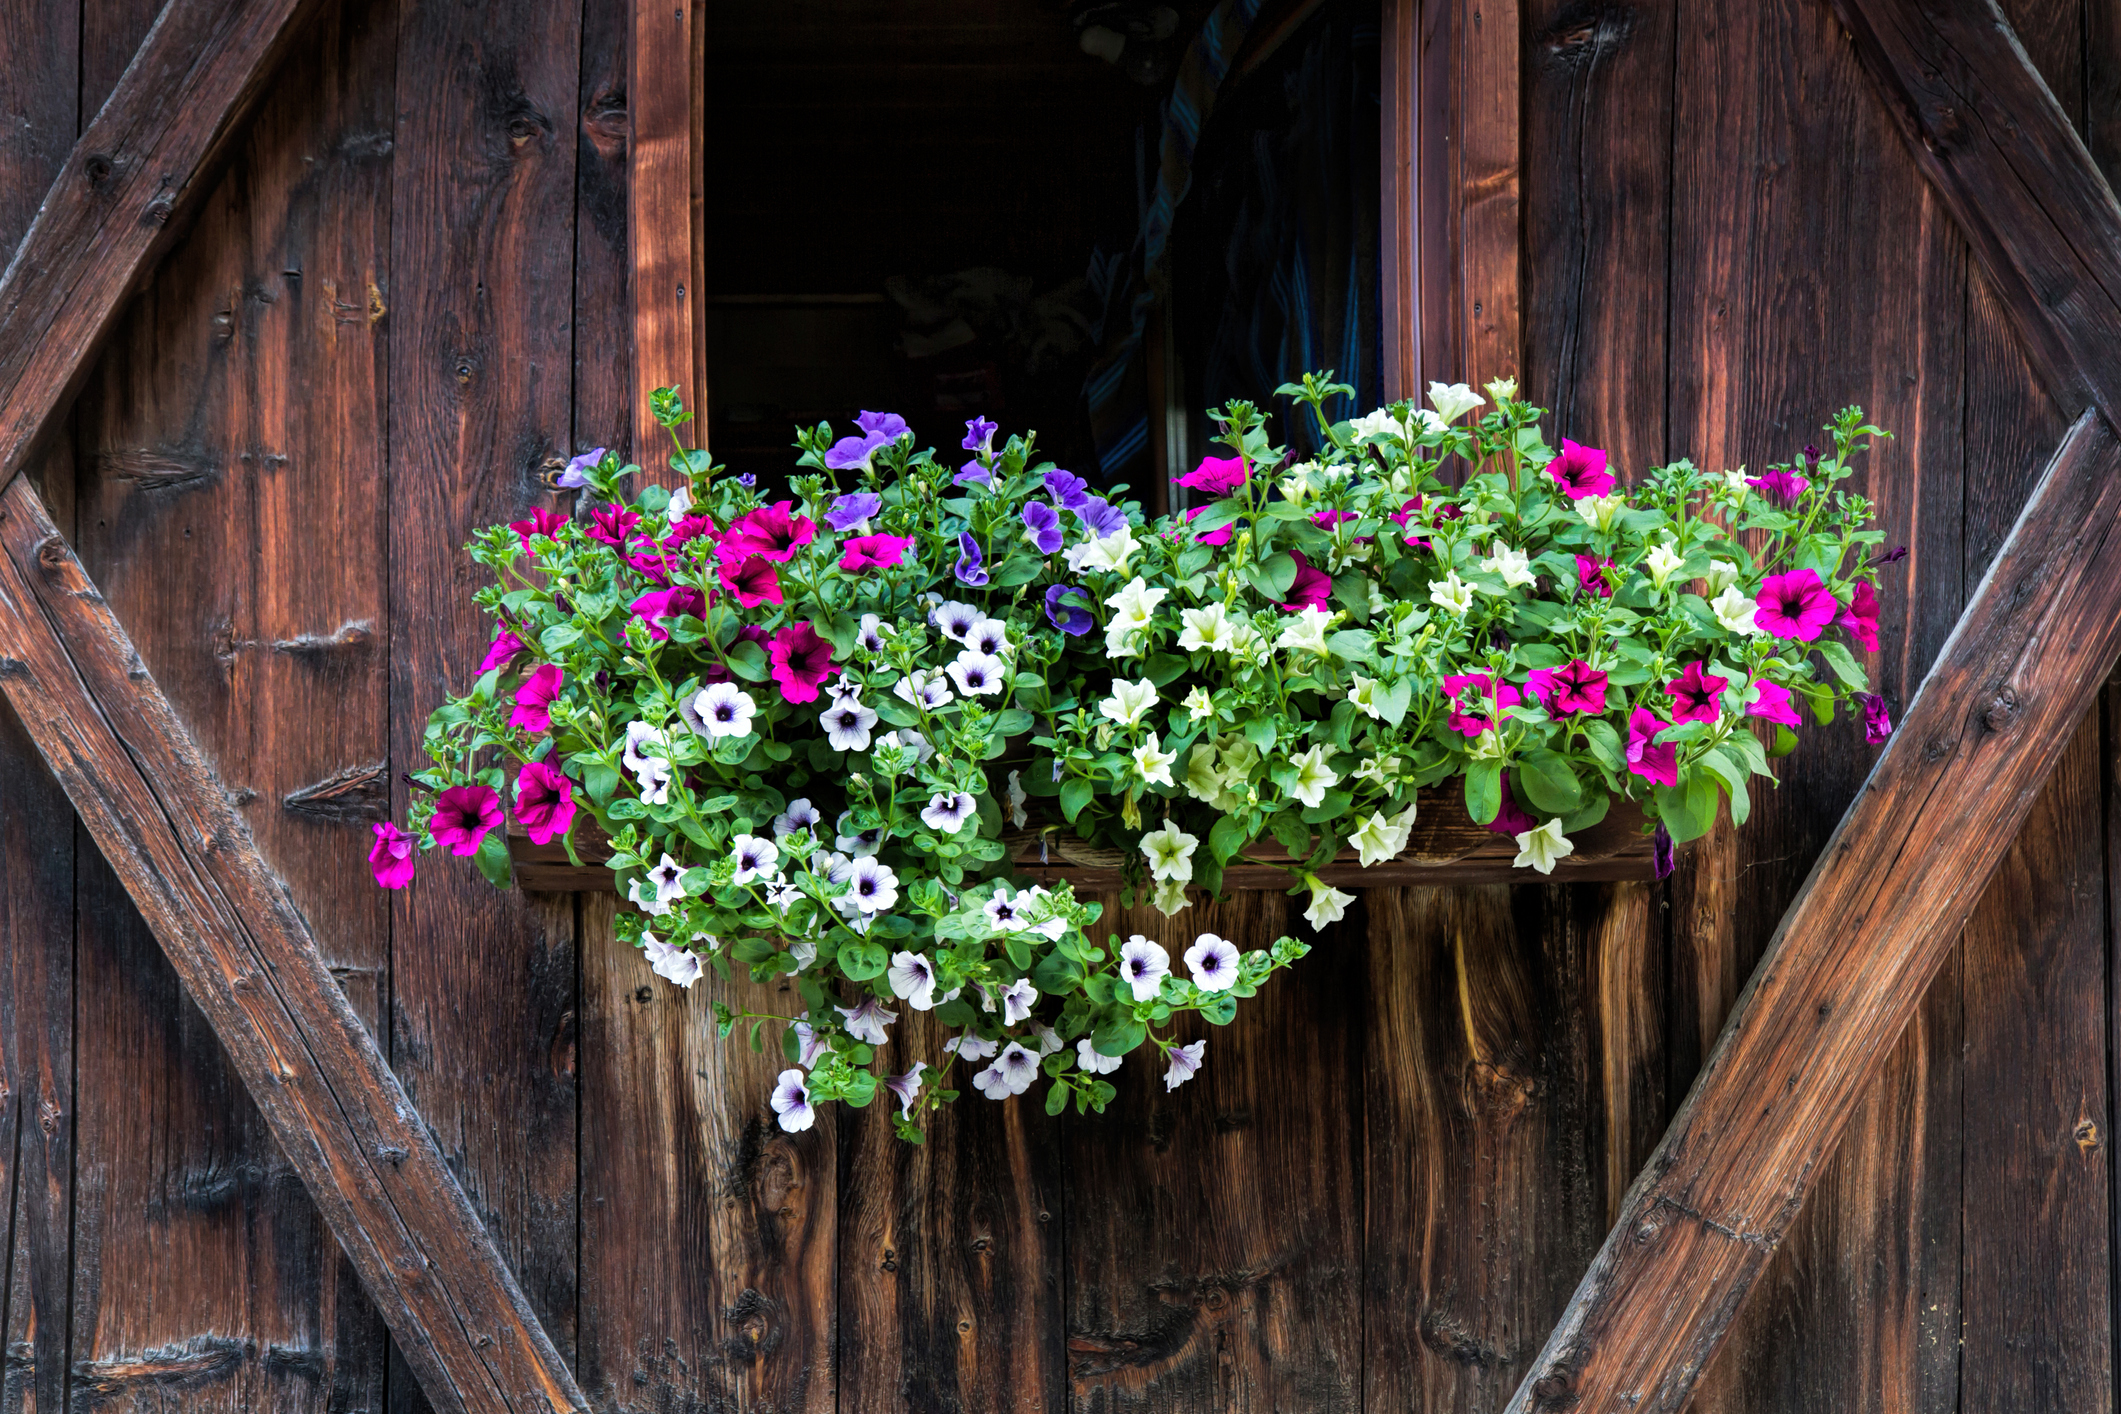 Adding a bright spot of petunias fits anywhere.